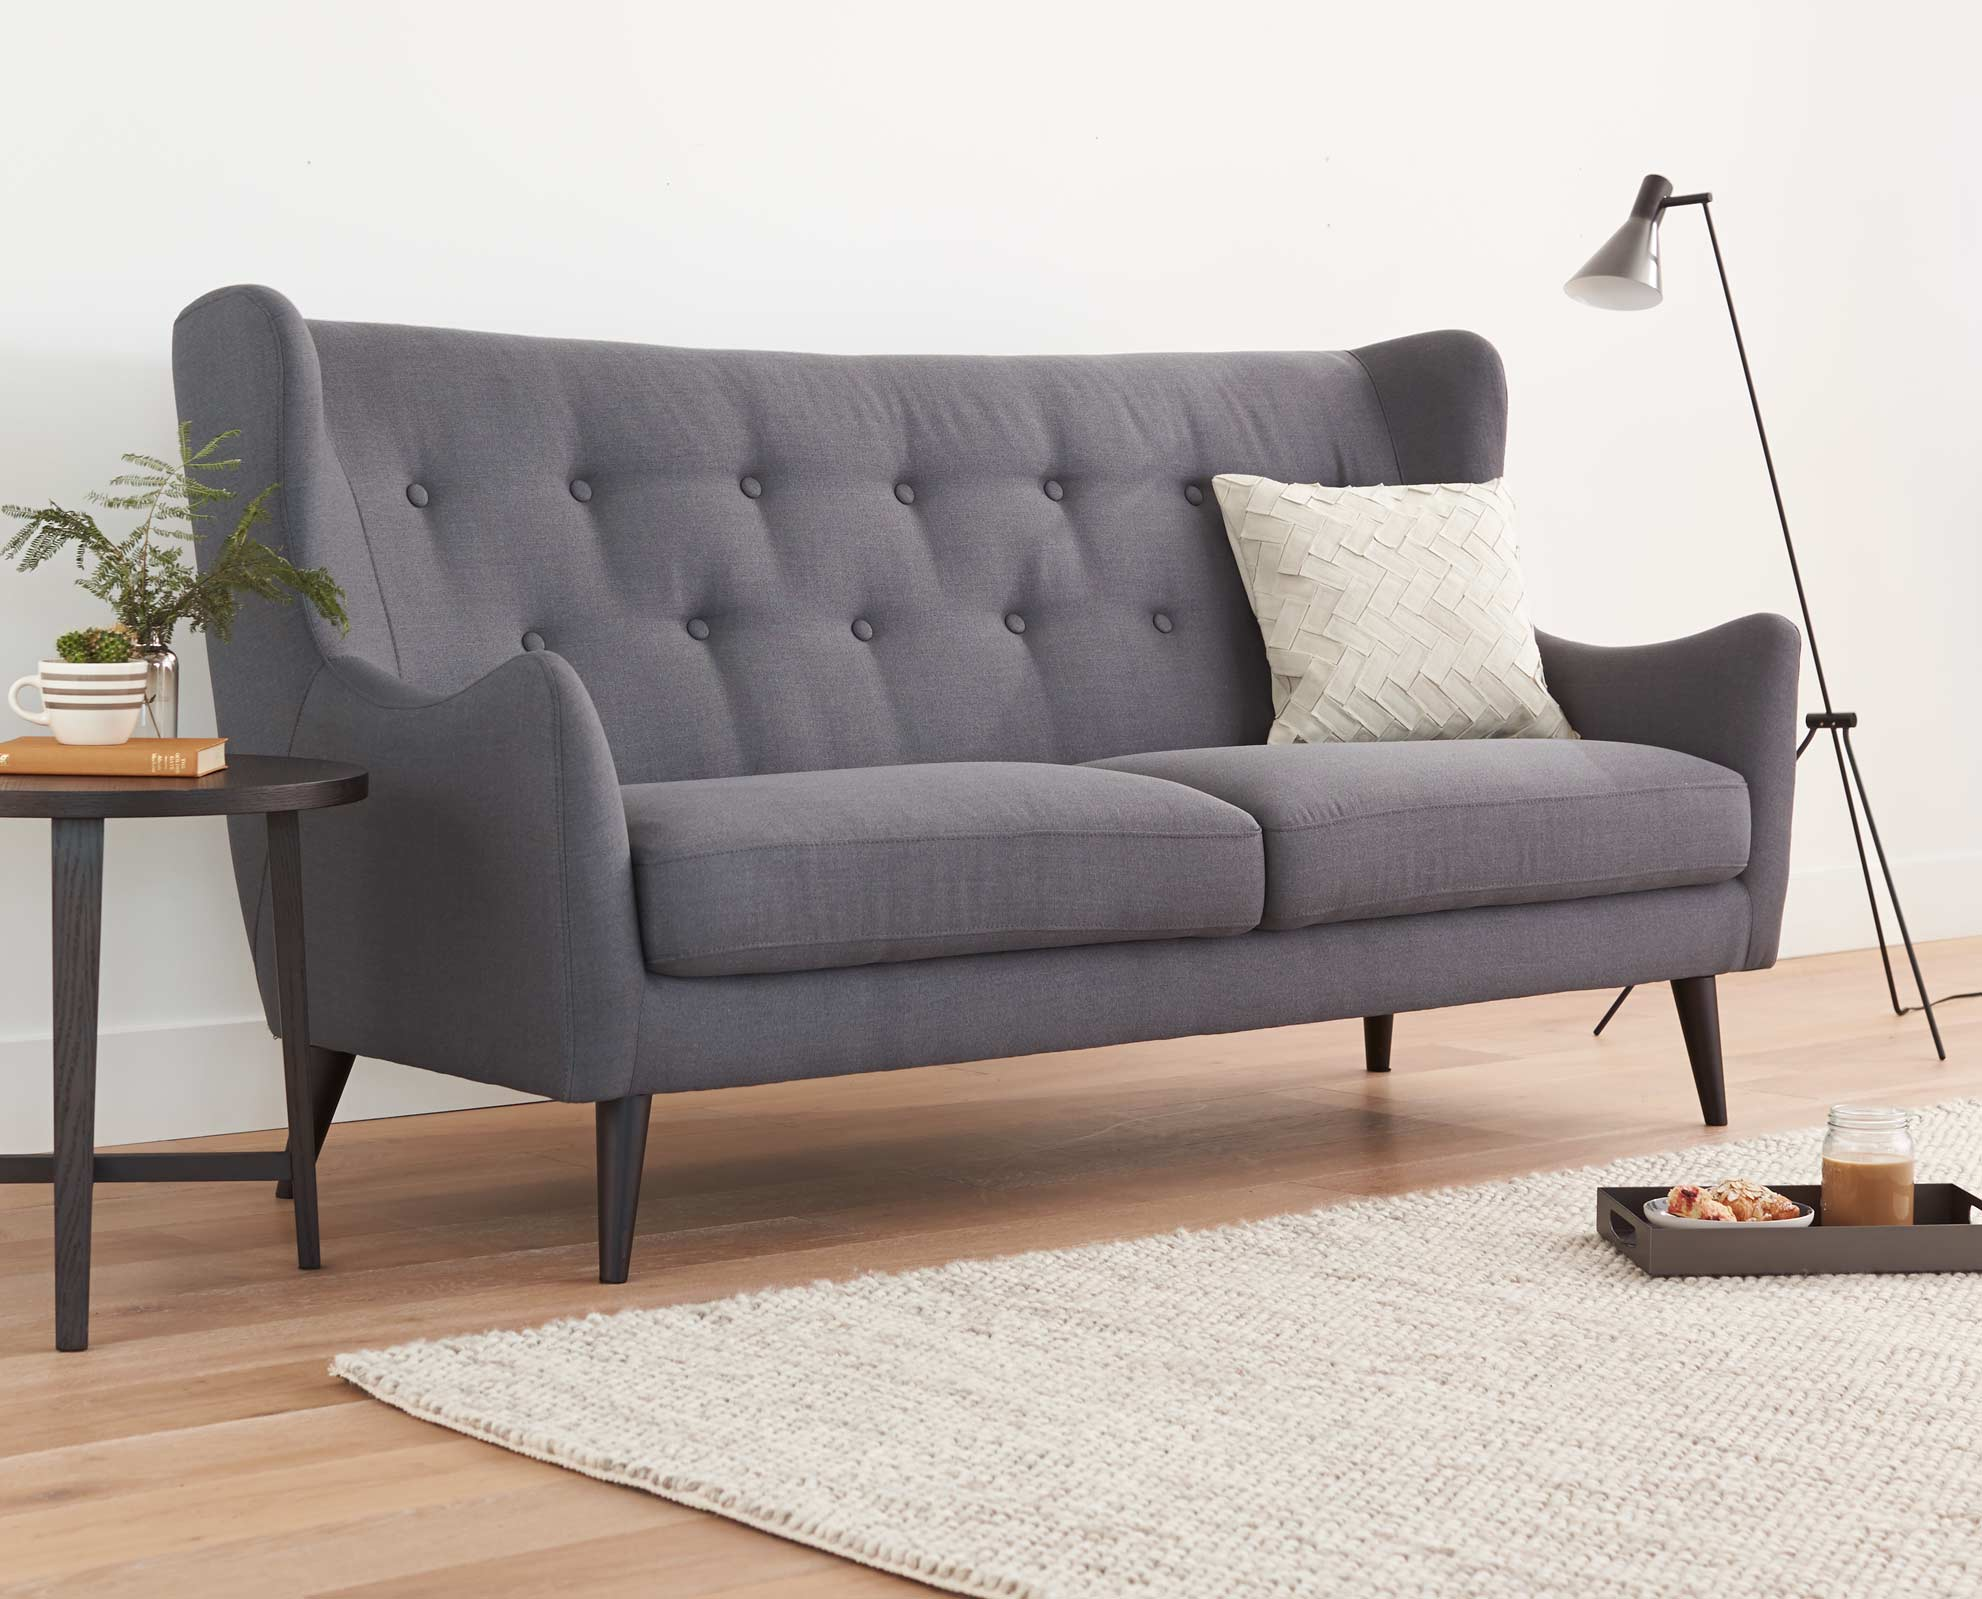 Dania Couch | Dania Hours | Daniafurniture